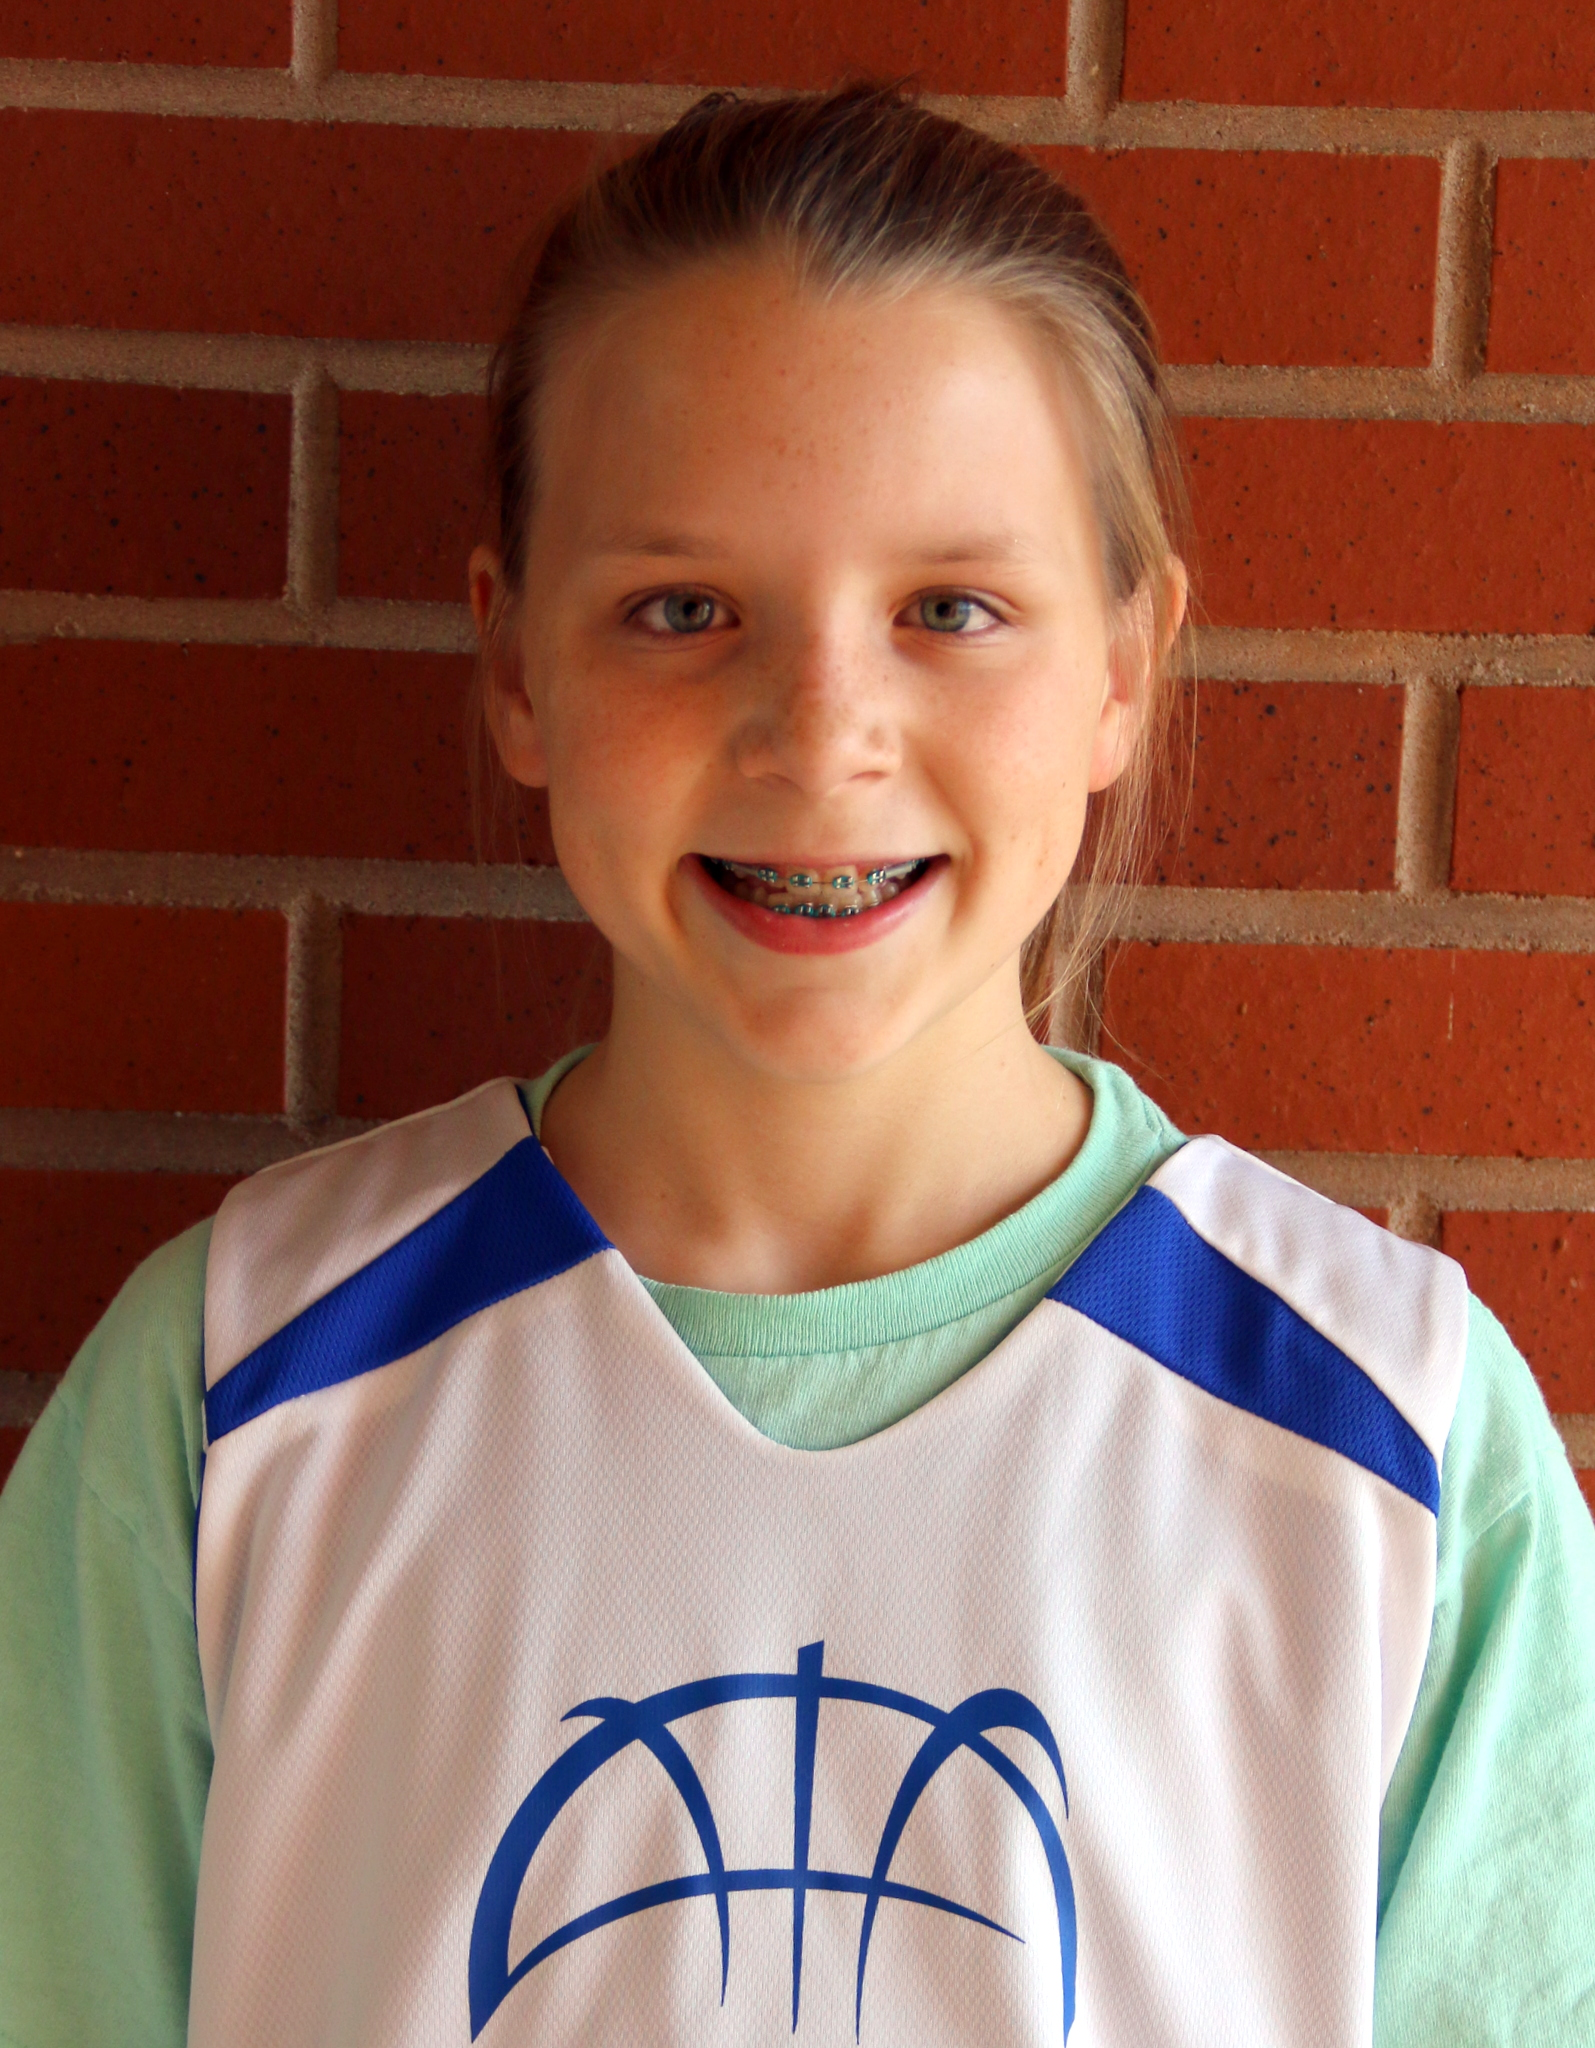 "KELSEY KIEFER 6th grade girls ""Kelsey Kiefer claims 'Player of the Week' honors for the 6th grade girls team, which extended their winning streak to six games with a 12-8 victory on Saturday against Sedgefield. Kelsey only scored two points, but her ball-hawking defense, rebounding, and passing were key to the win. Kelsey's leadership has been instrumental throughout the season. This brings the Ospreys record to 6-4, one win away from achieving their goal of making the playoffs after an 0-4 start."""